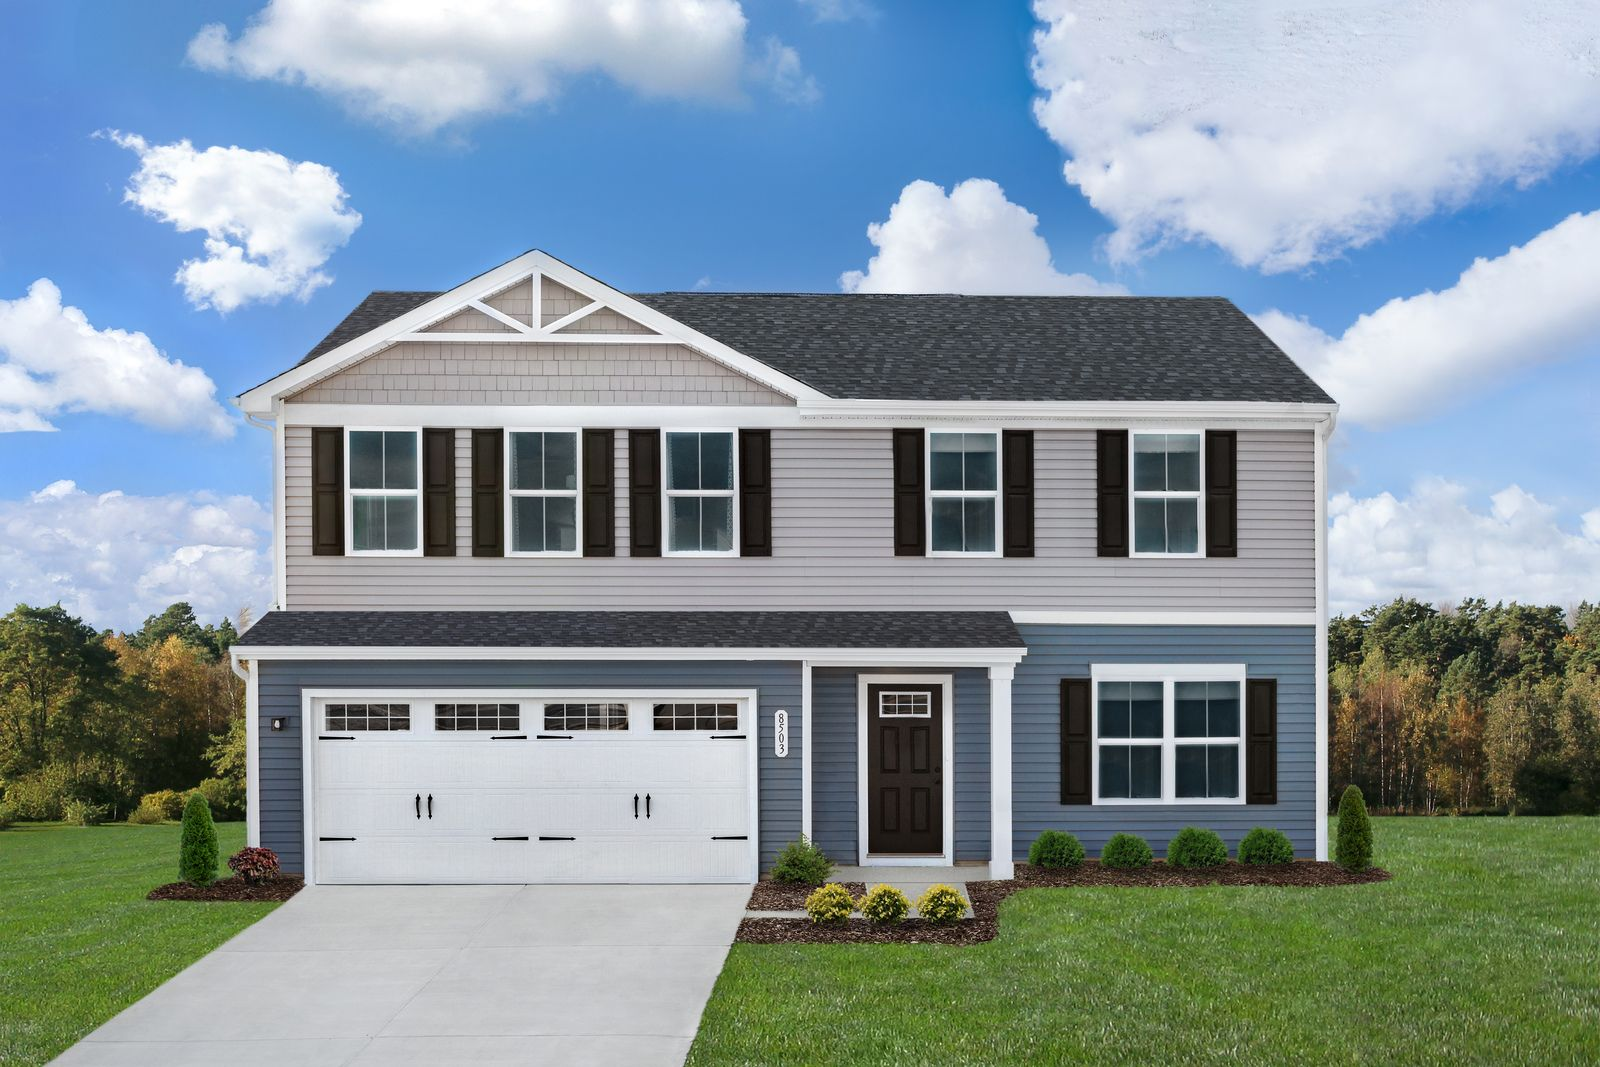 New Homes in Christiana - From Upper $200s